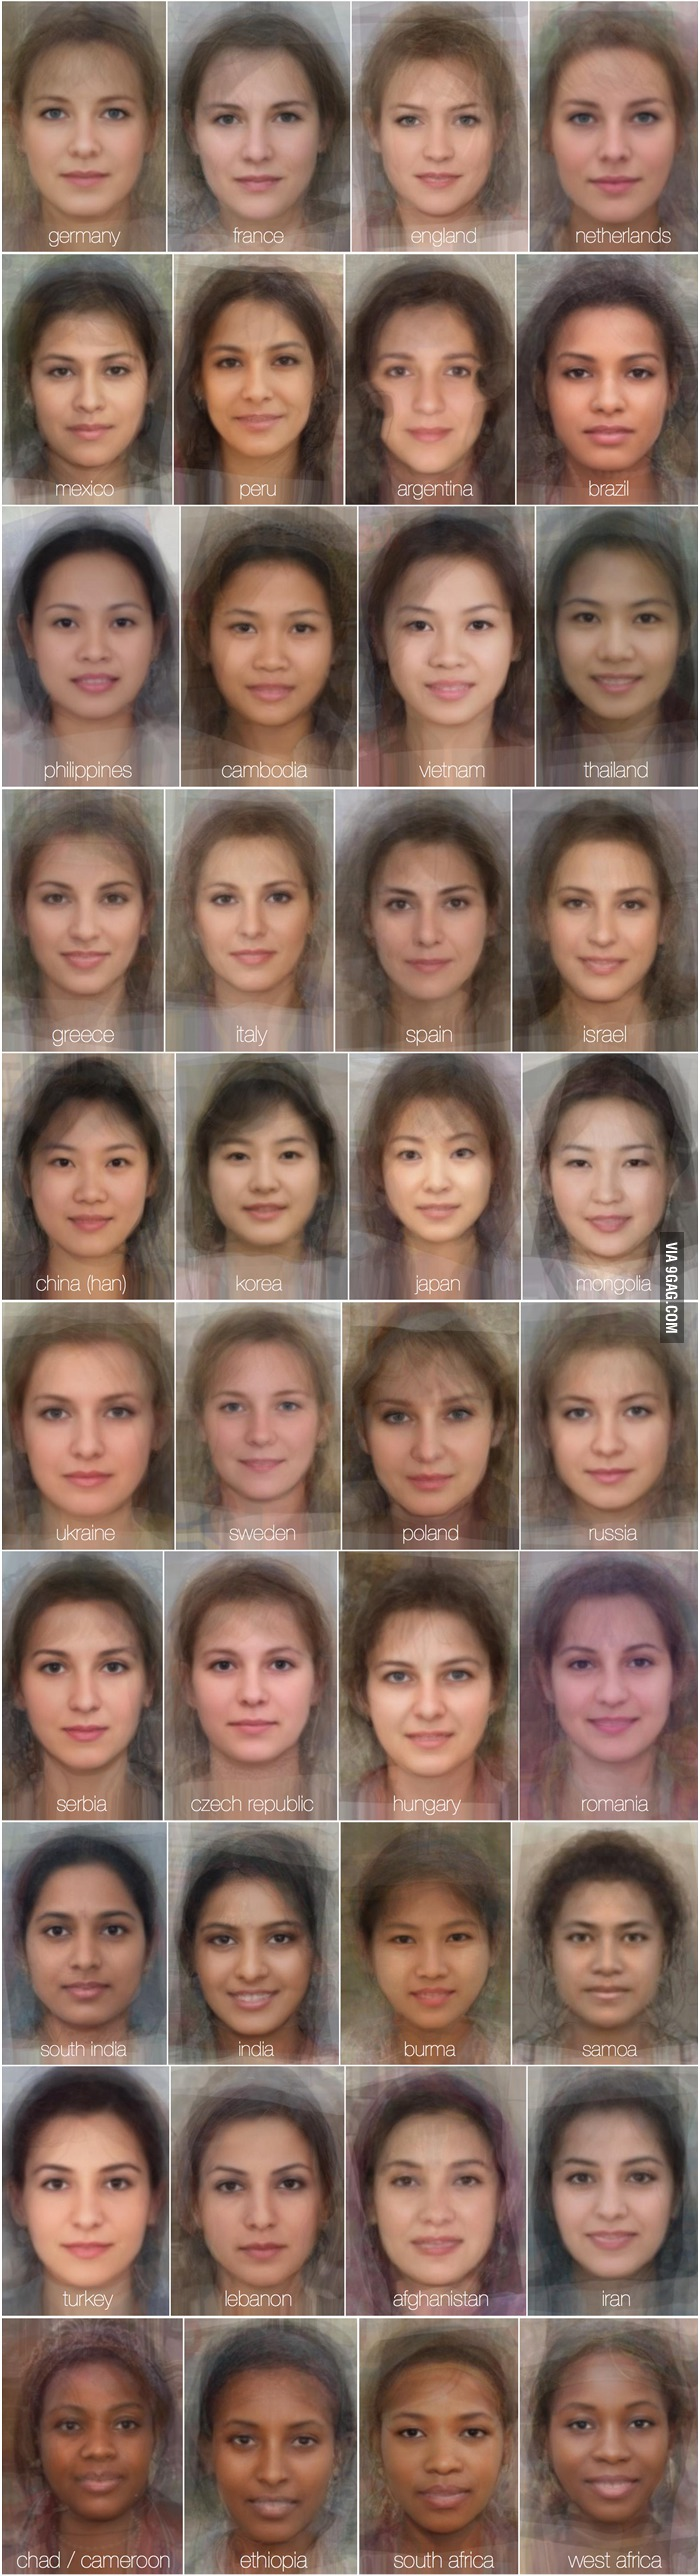 average faces of women around the world